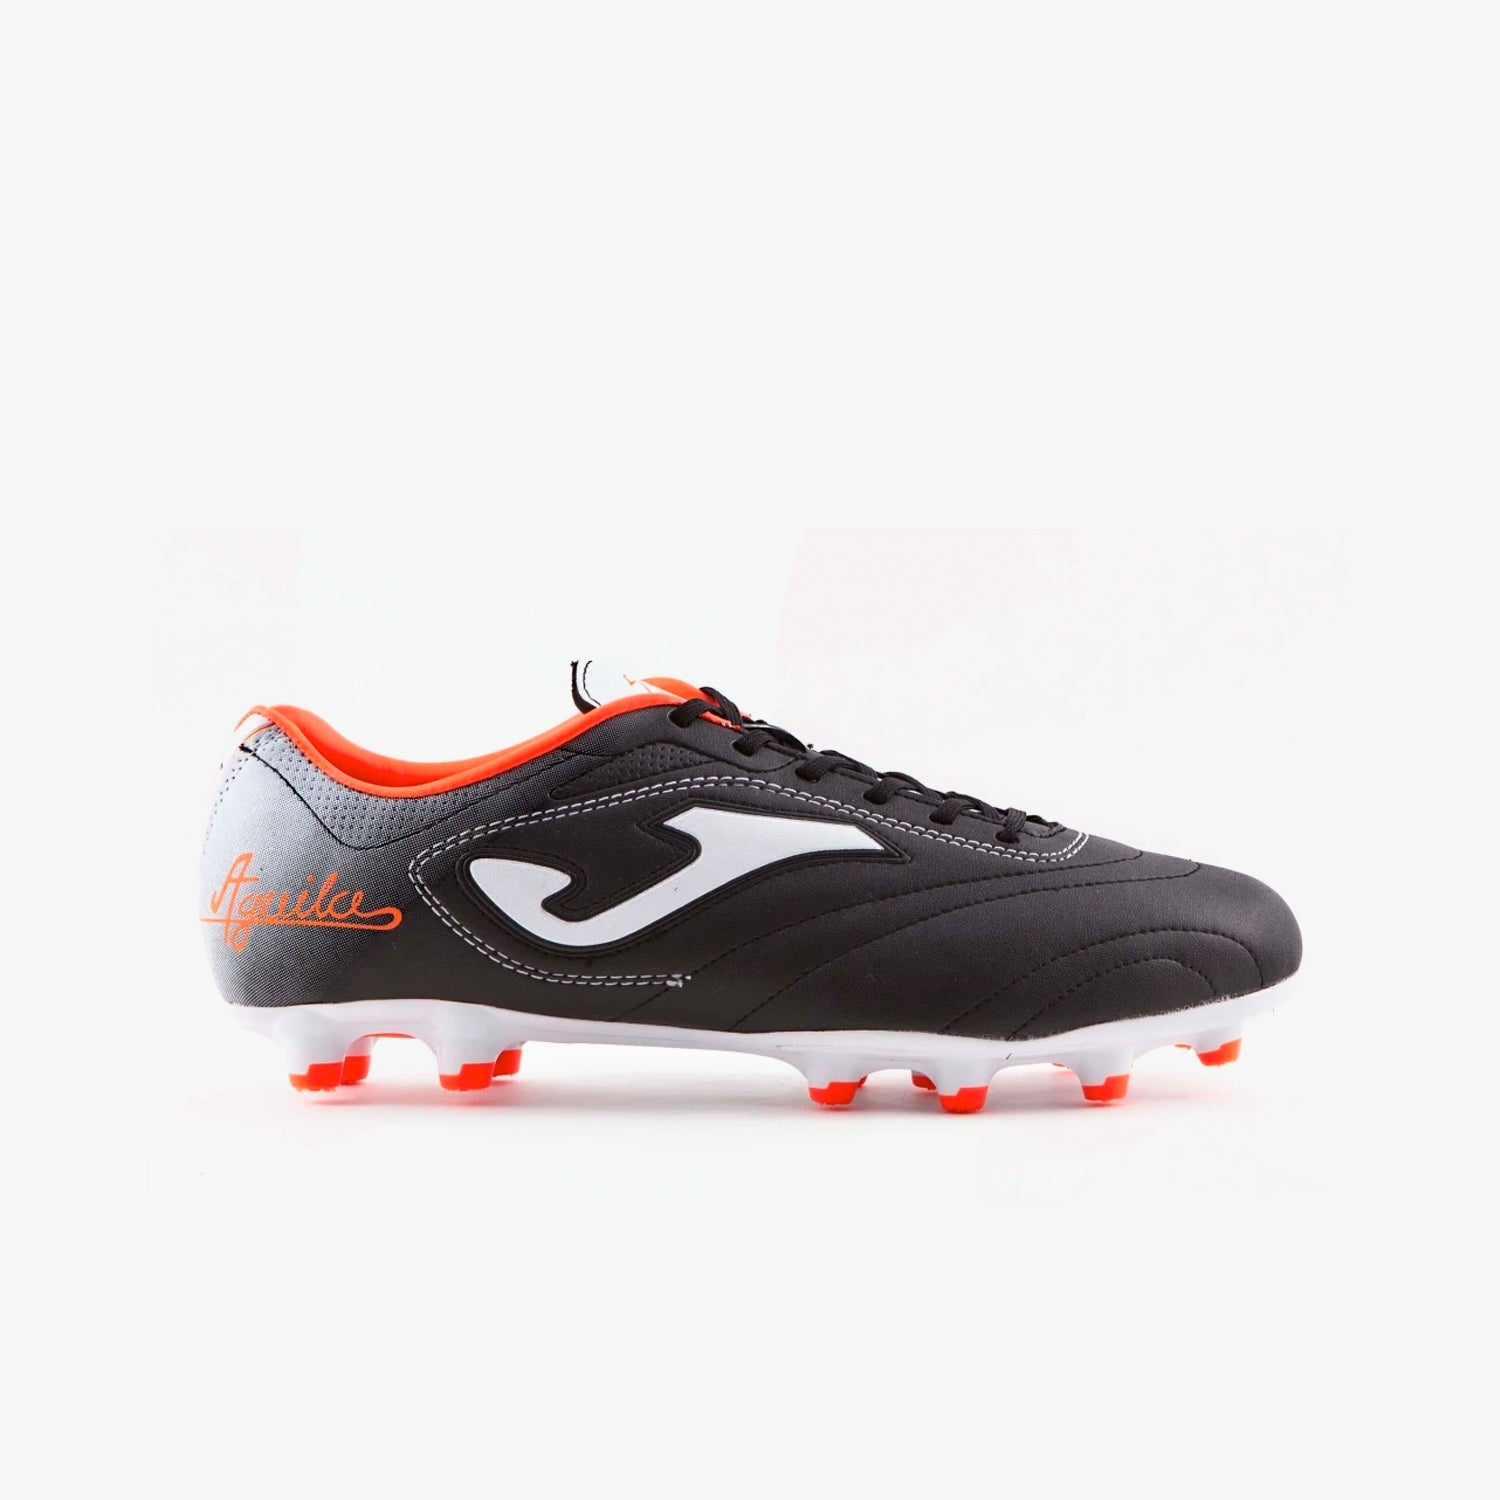 Aguila 401 Firmground Soccer Shoes